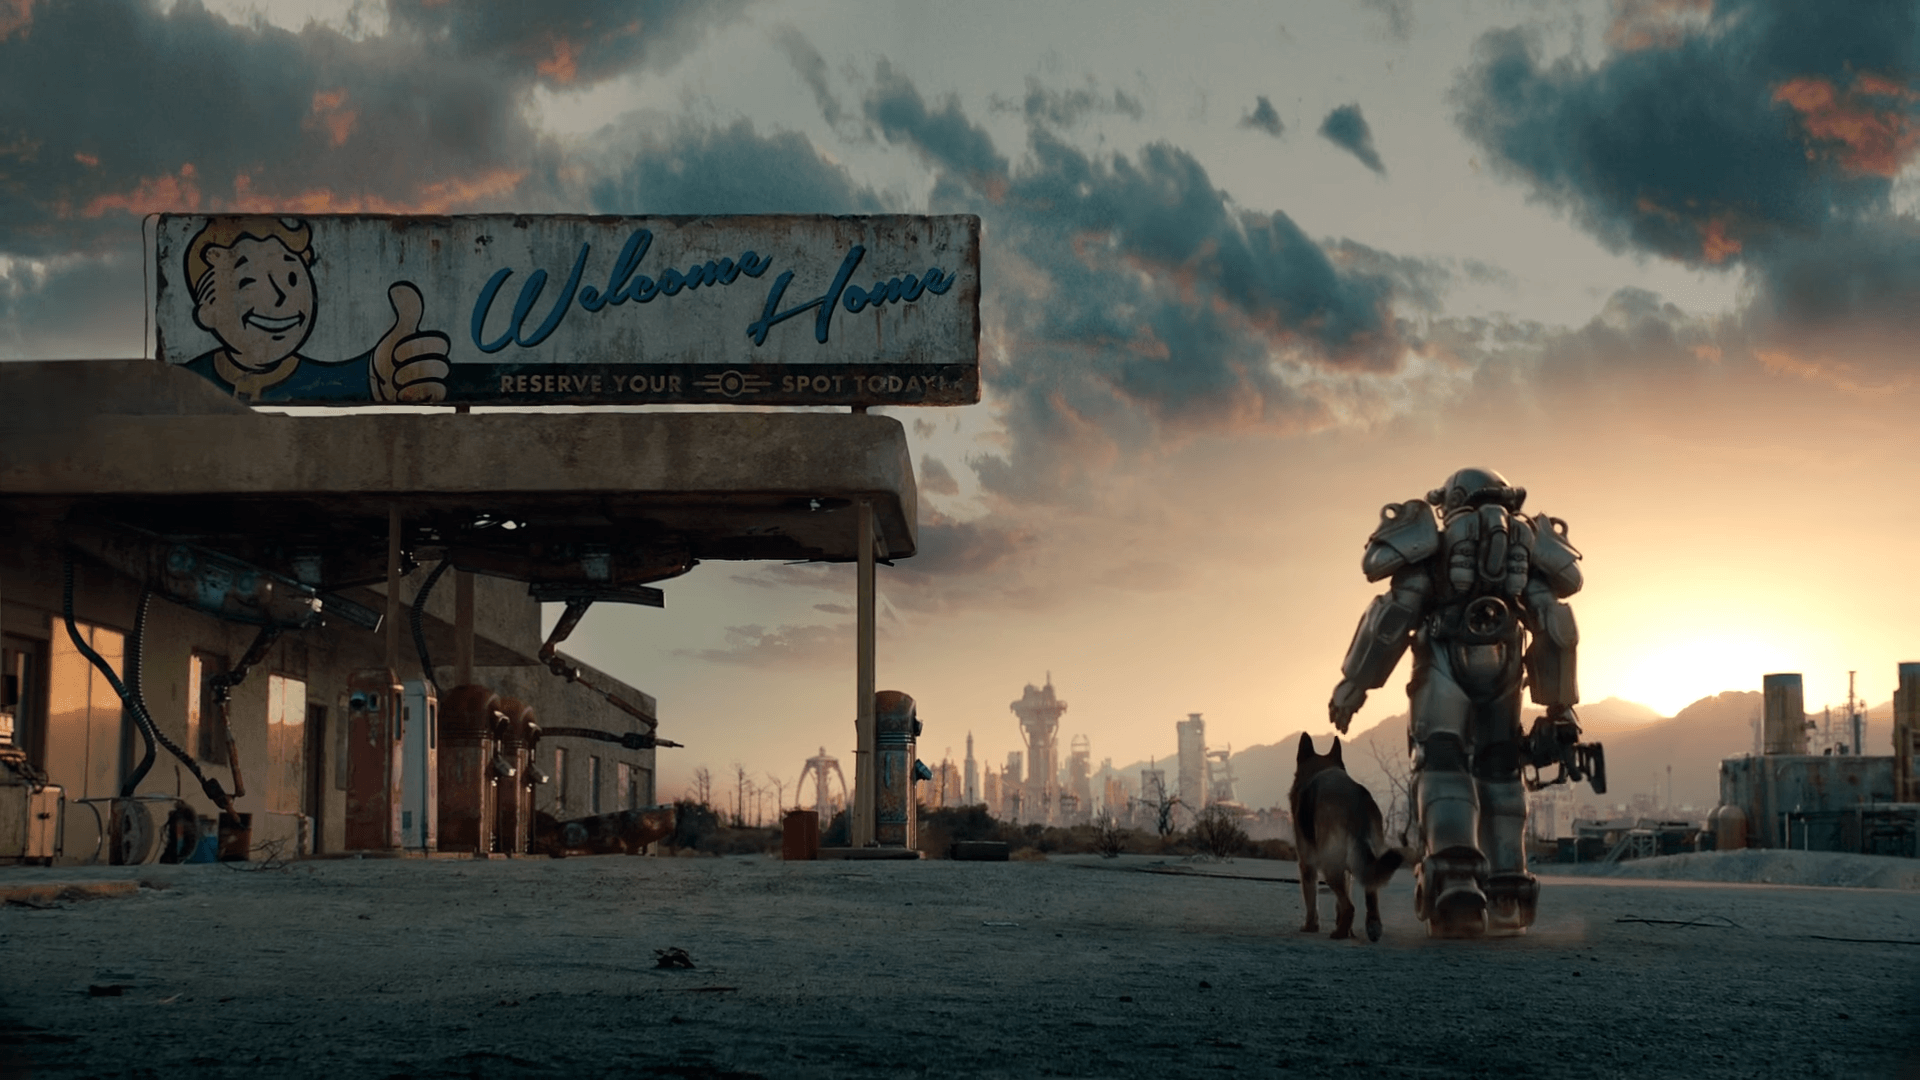 Nuke Fallout 4 Wallpapers Top Free Nuke Fallout 4 Backgrounds